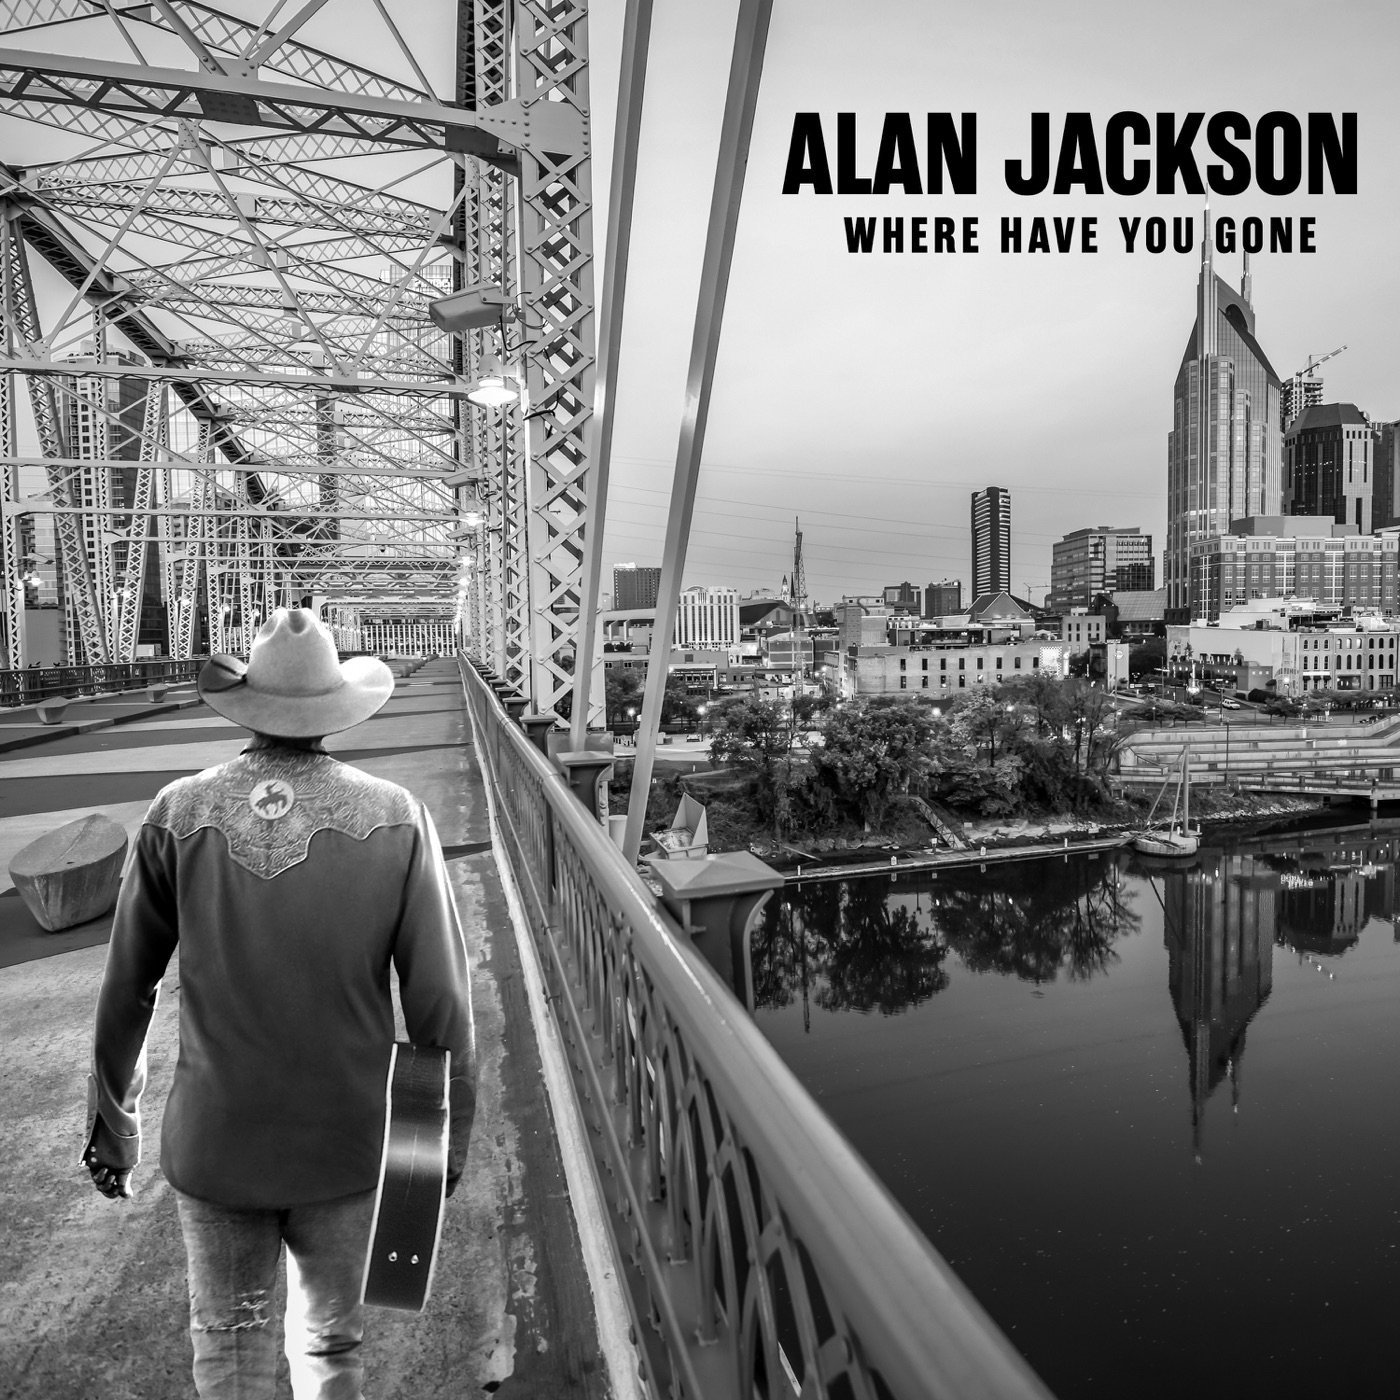 Art for Things That Matter by Alan Jackson